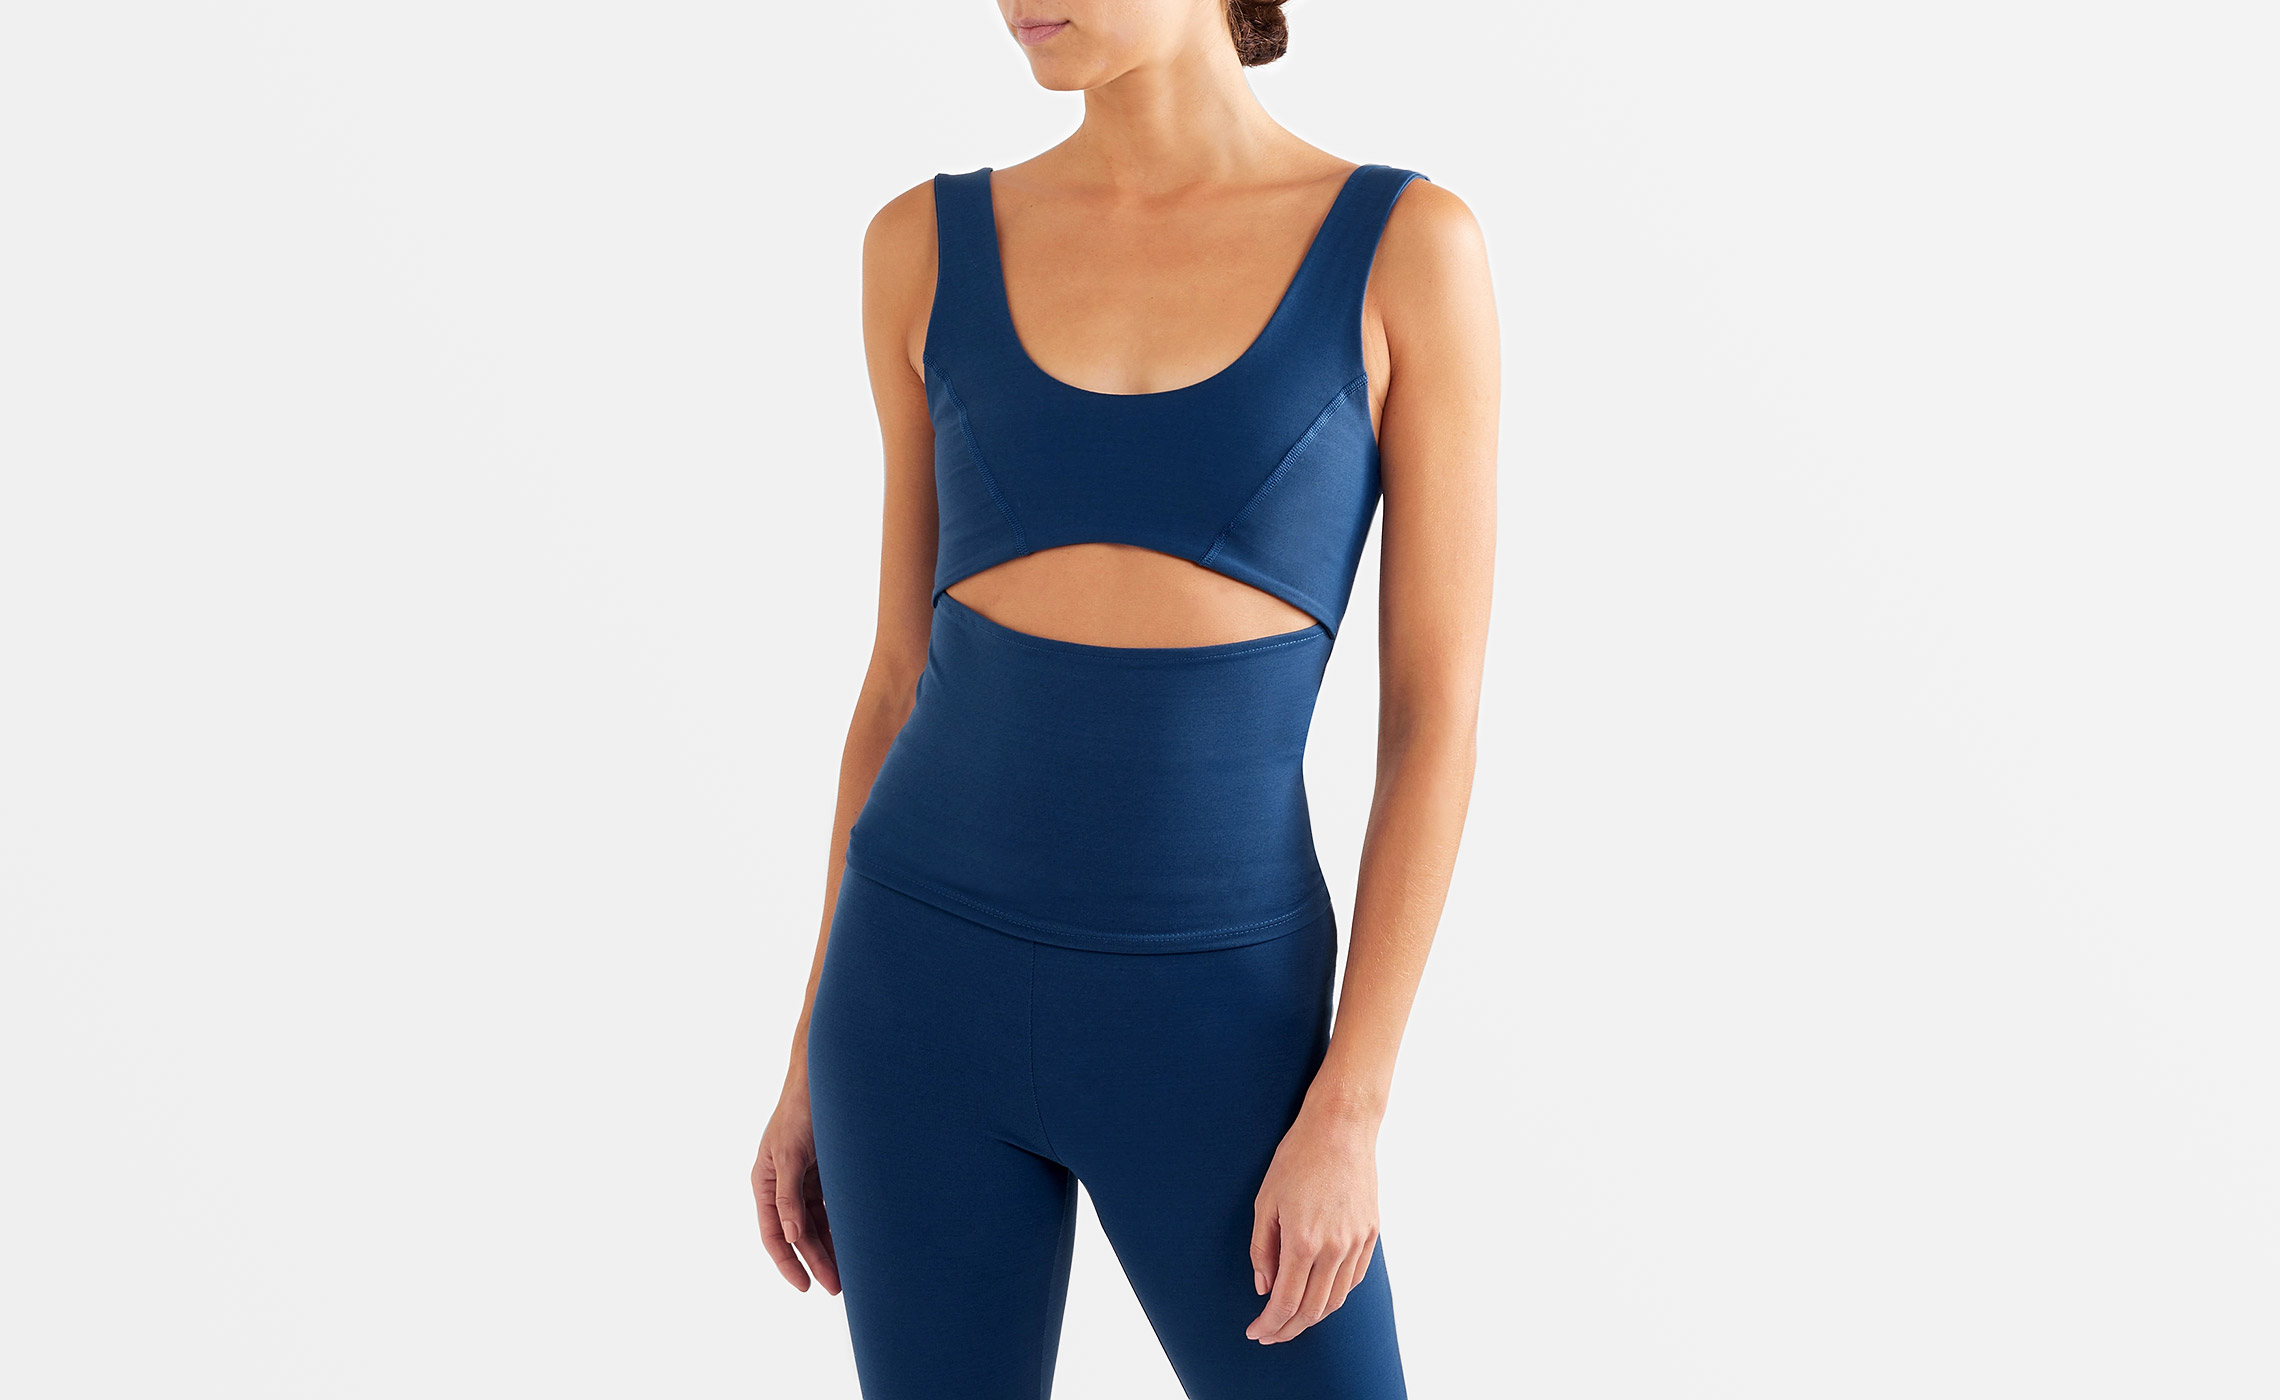 Woman wearing a Live the Process navy blue activewear set